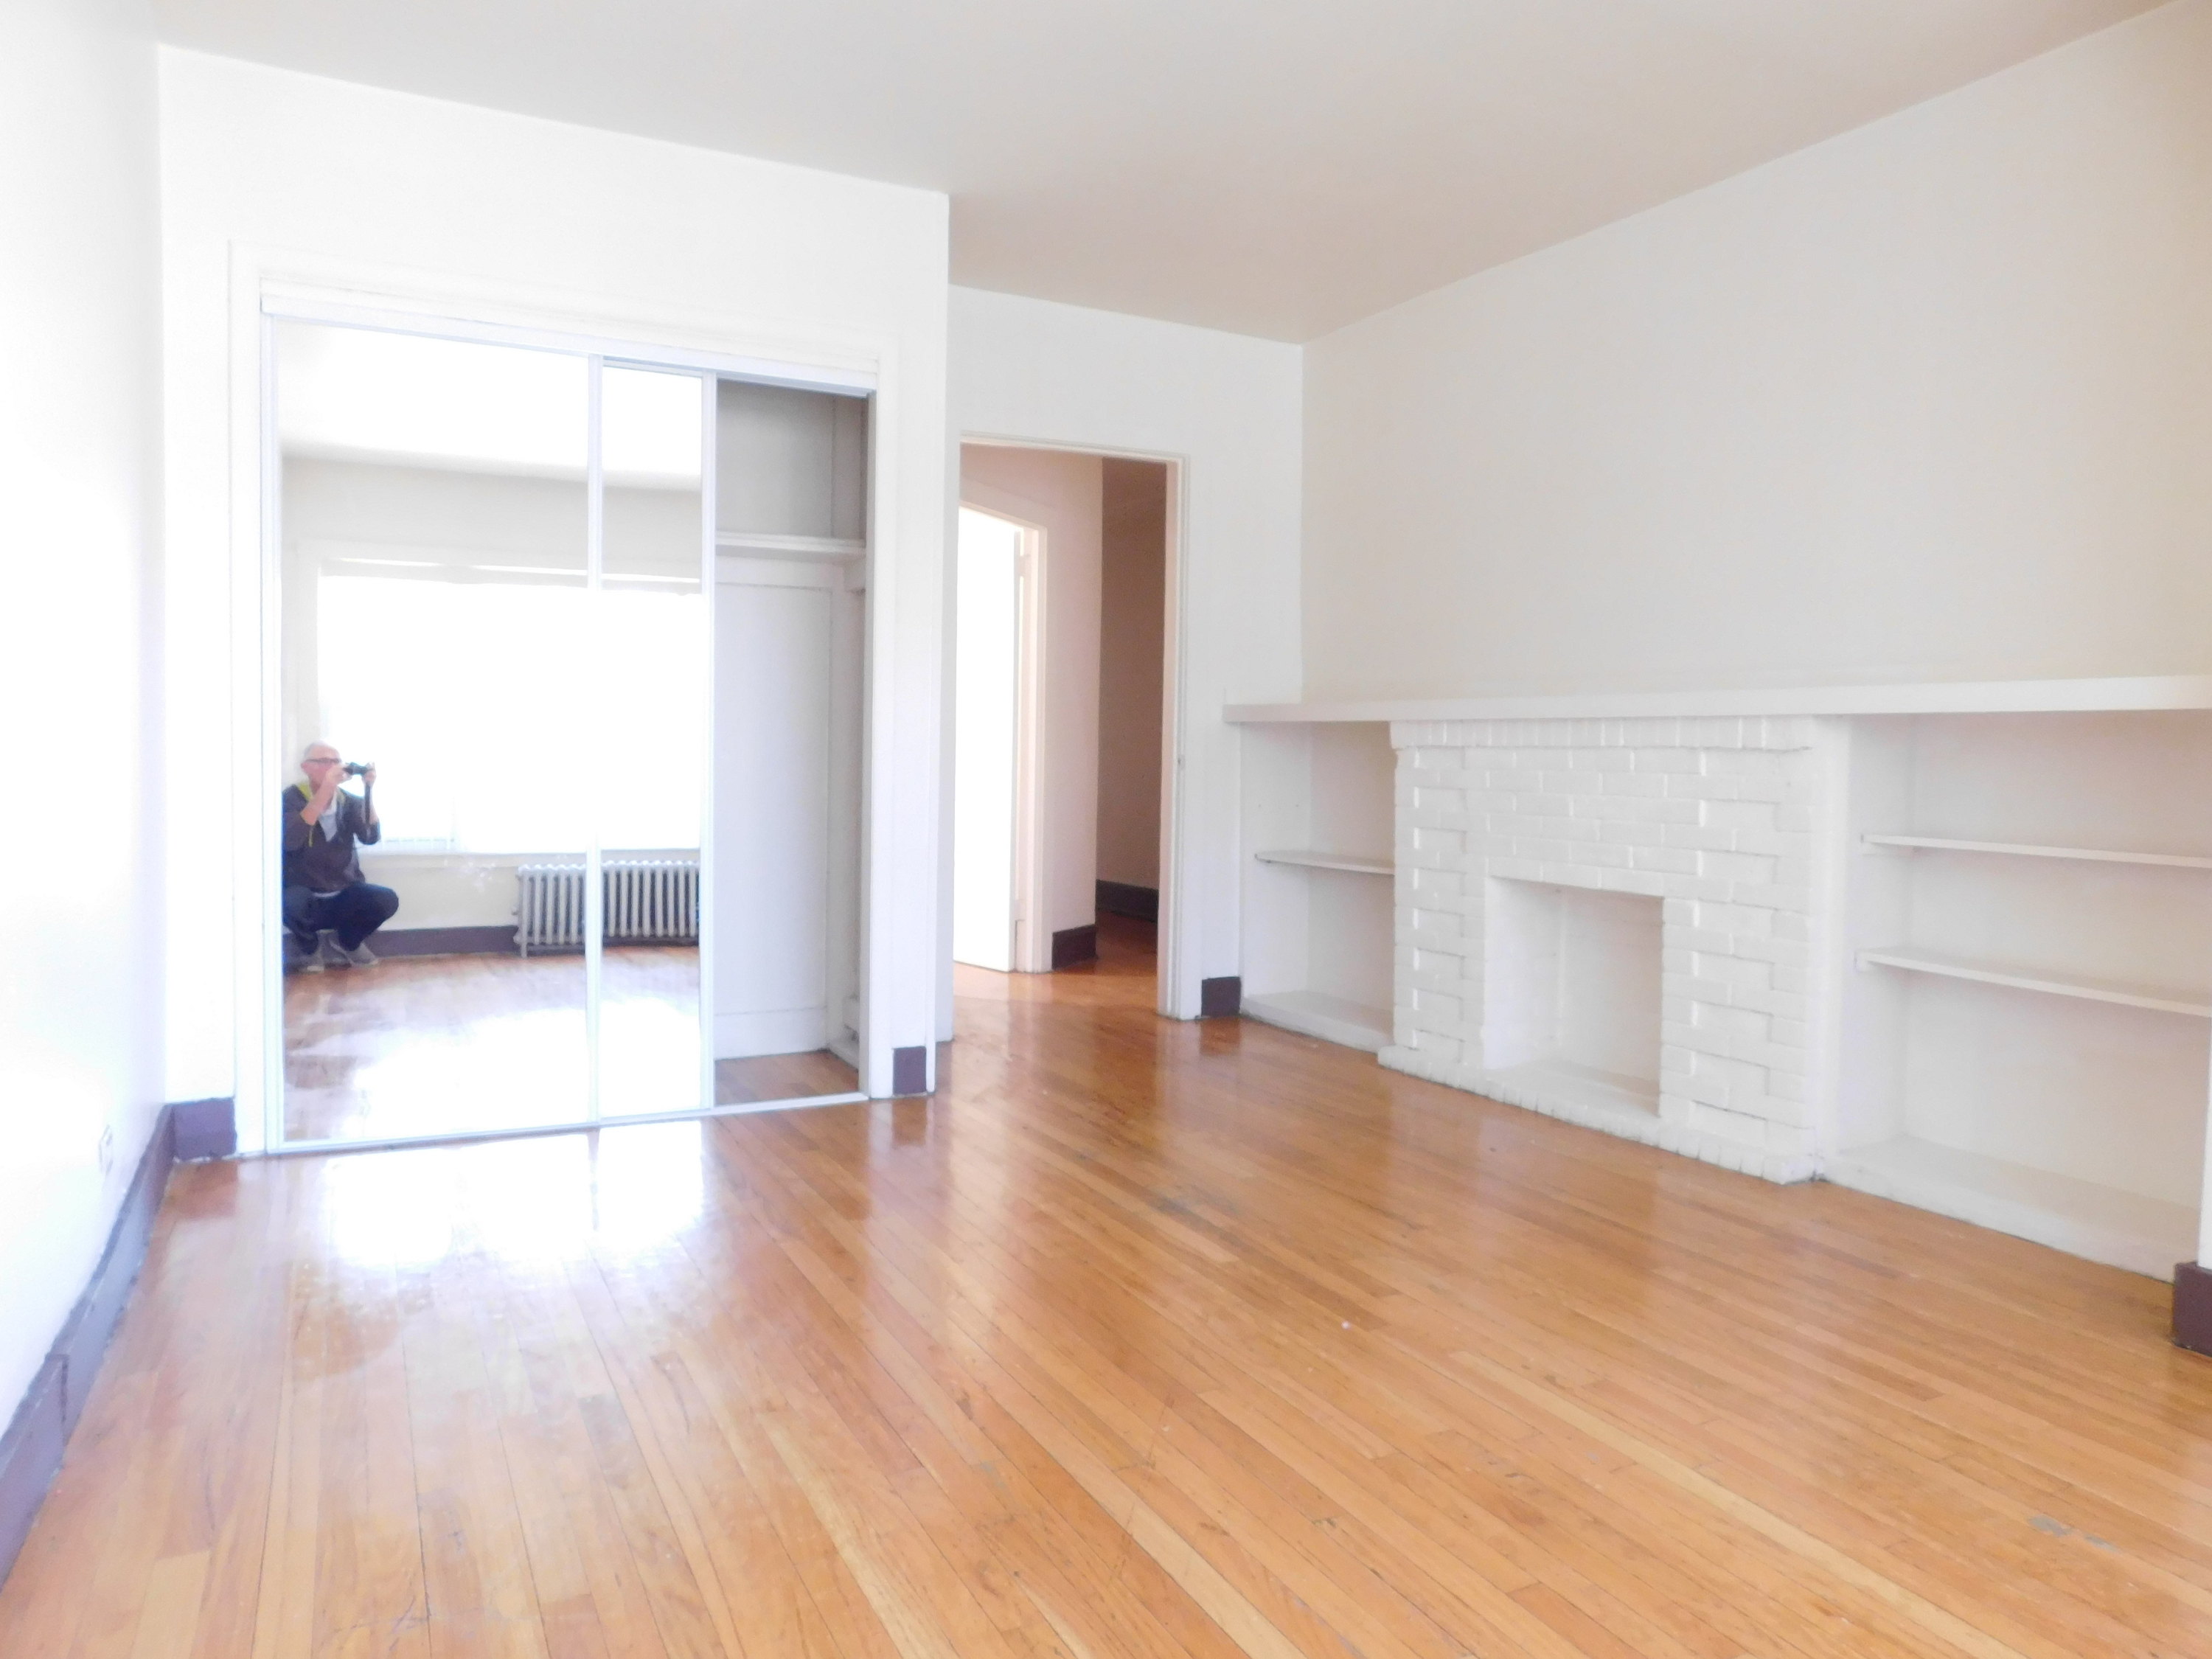 2 bedroom in Austin Chicago utilities included - decorative fireplace in living room